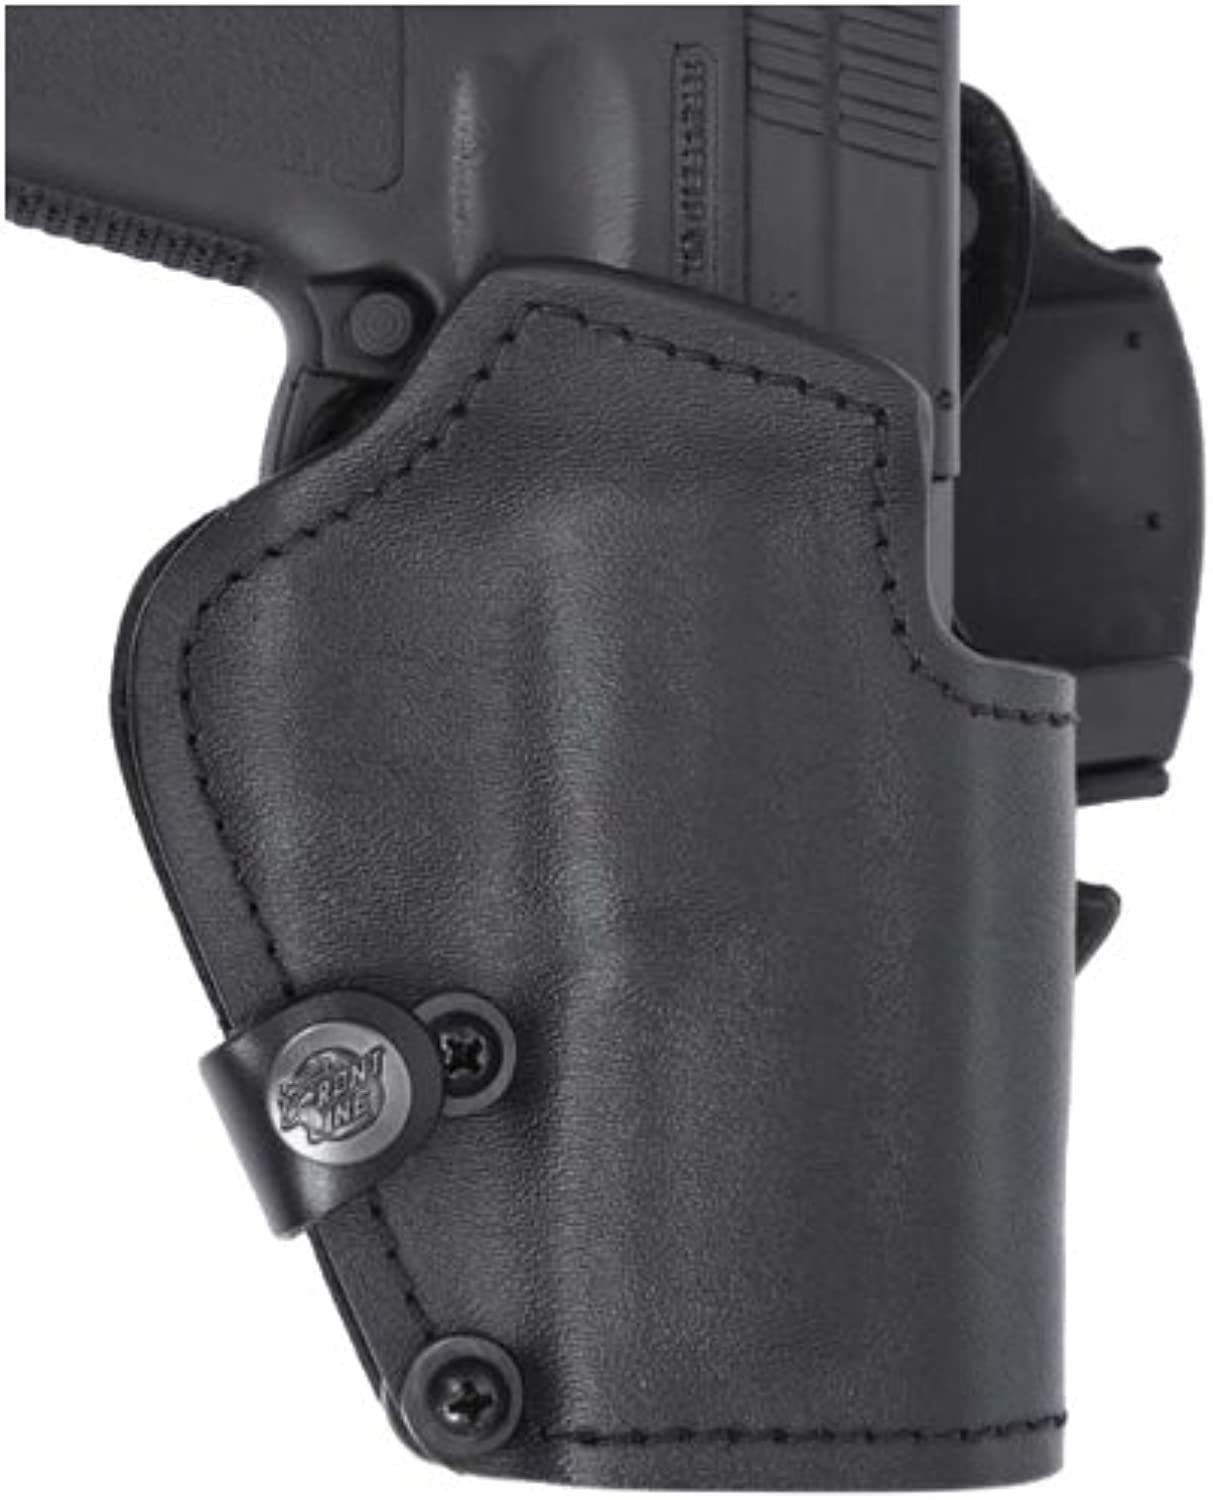 K4048CBK Open Top Kydex BFL Holster with Suede Lining, Black, Right